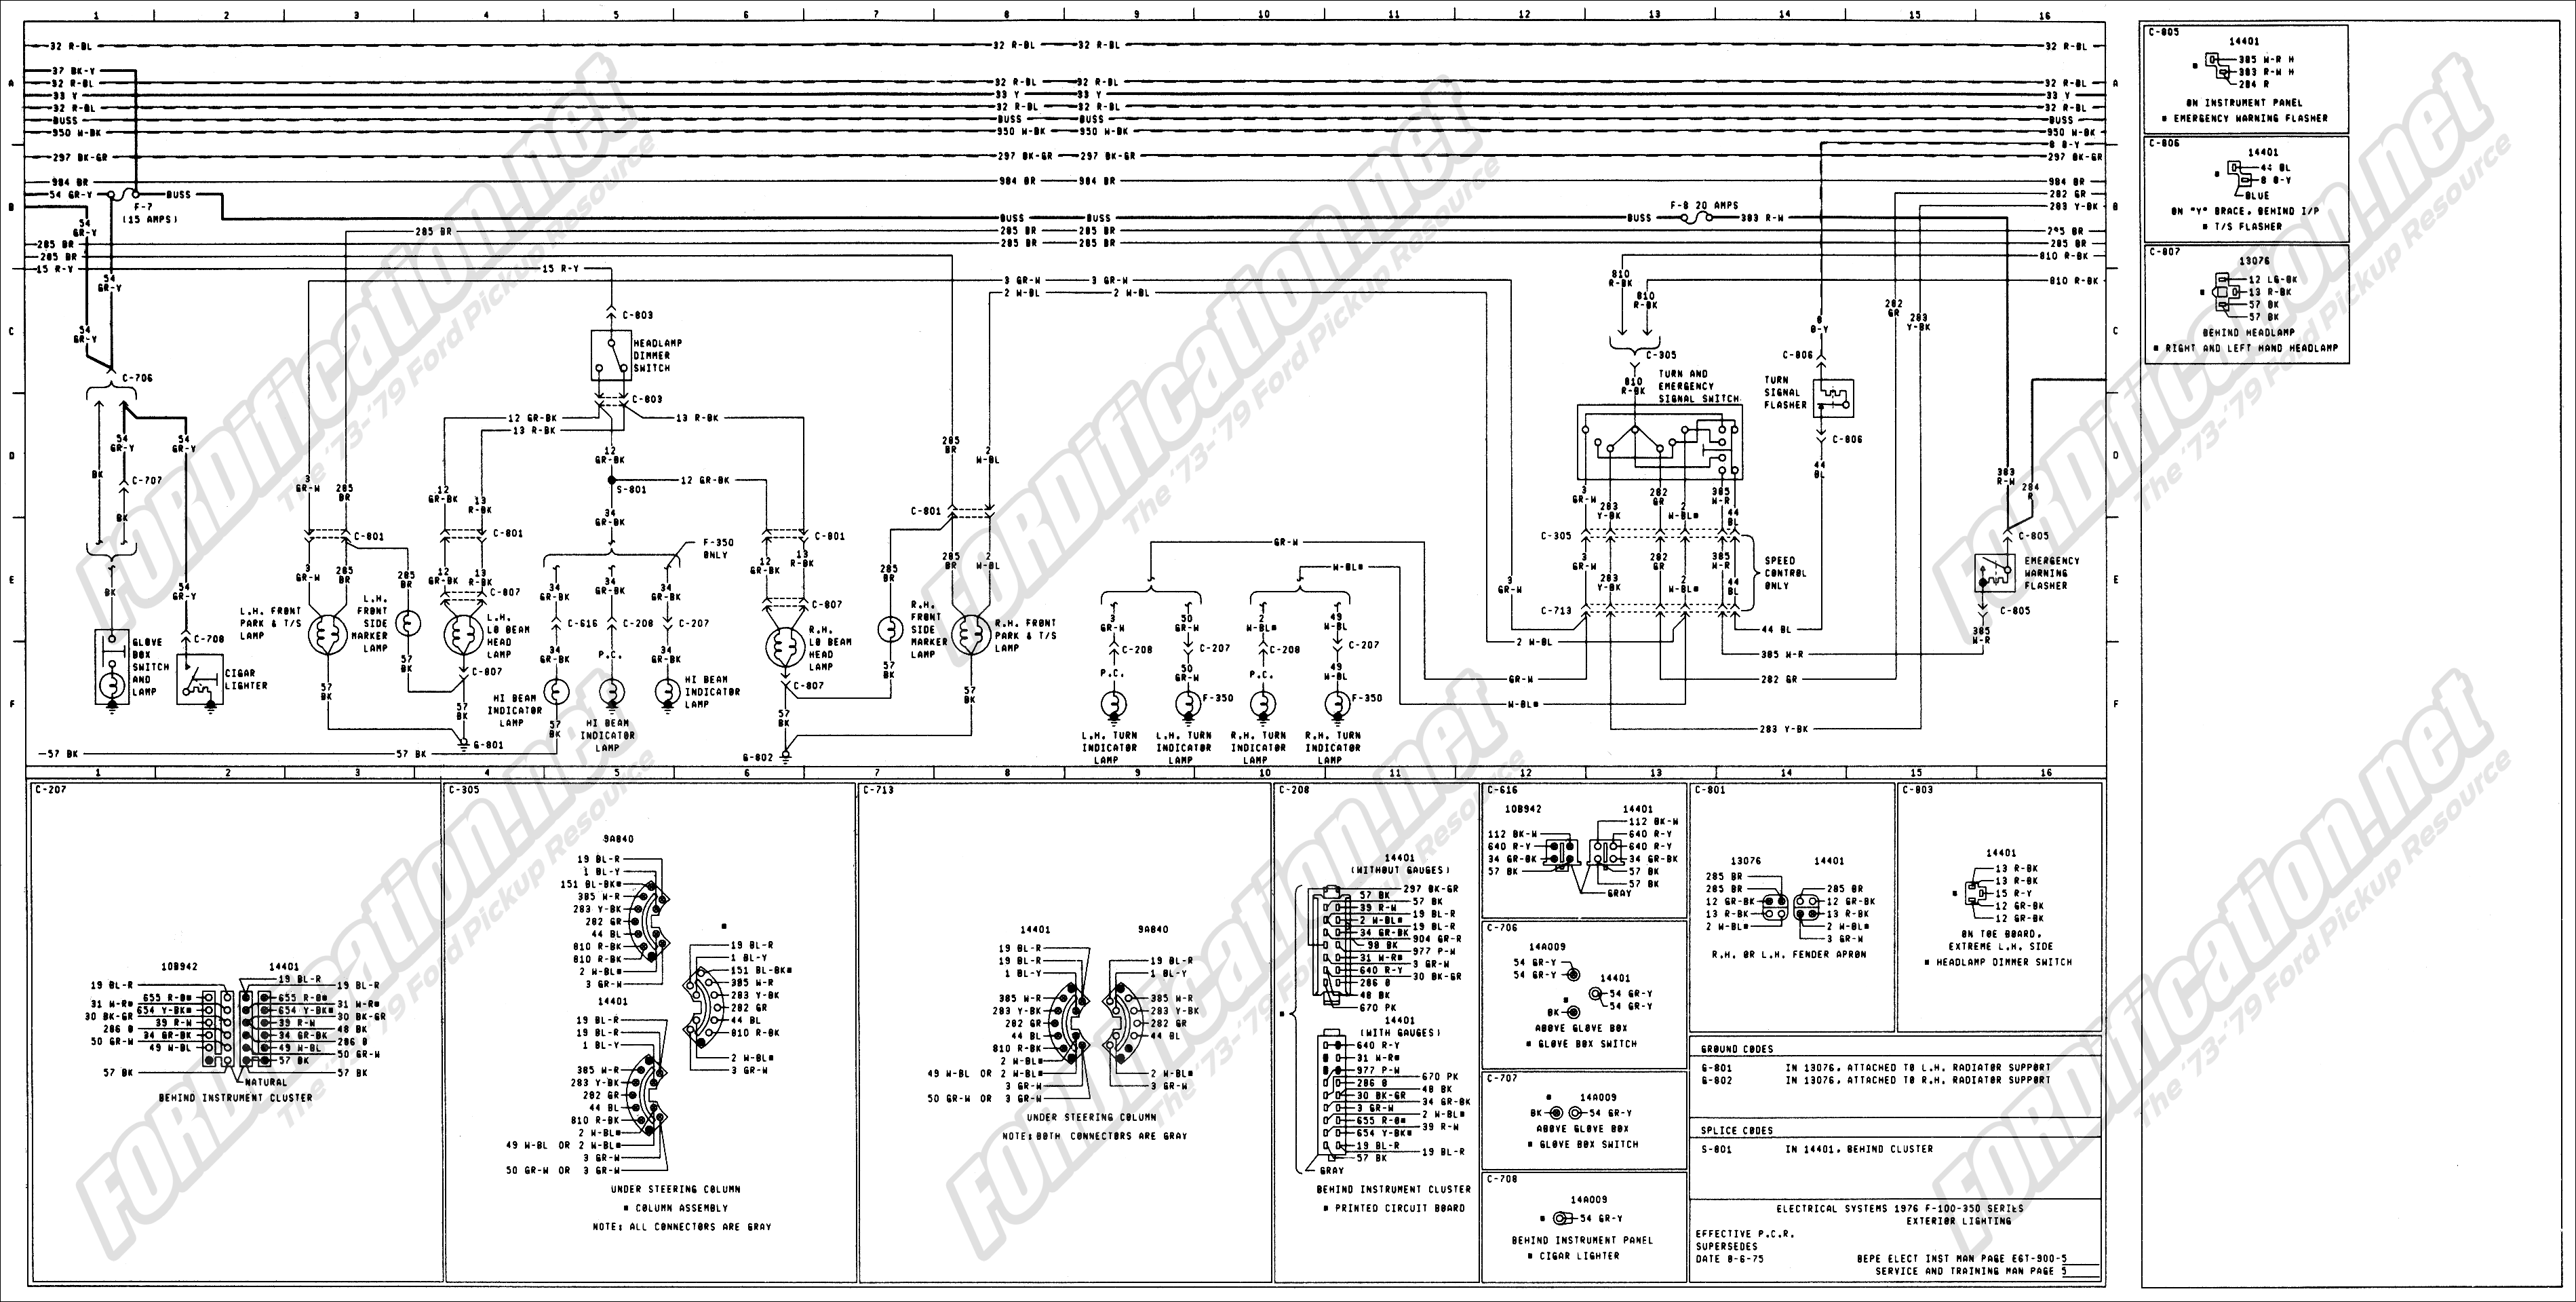 1973 1979 ford truck wiring diagrams schematics fordification net rh fordification net ford wiring schematics free ford schematics free